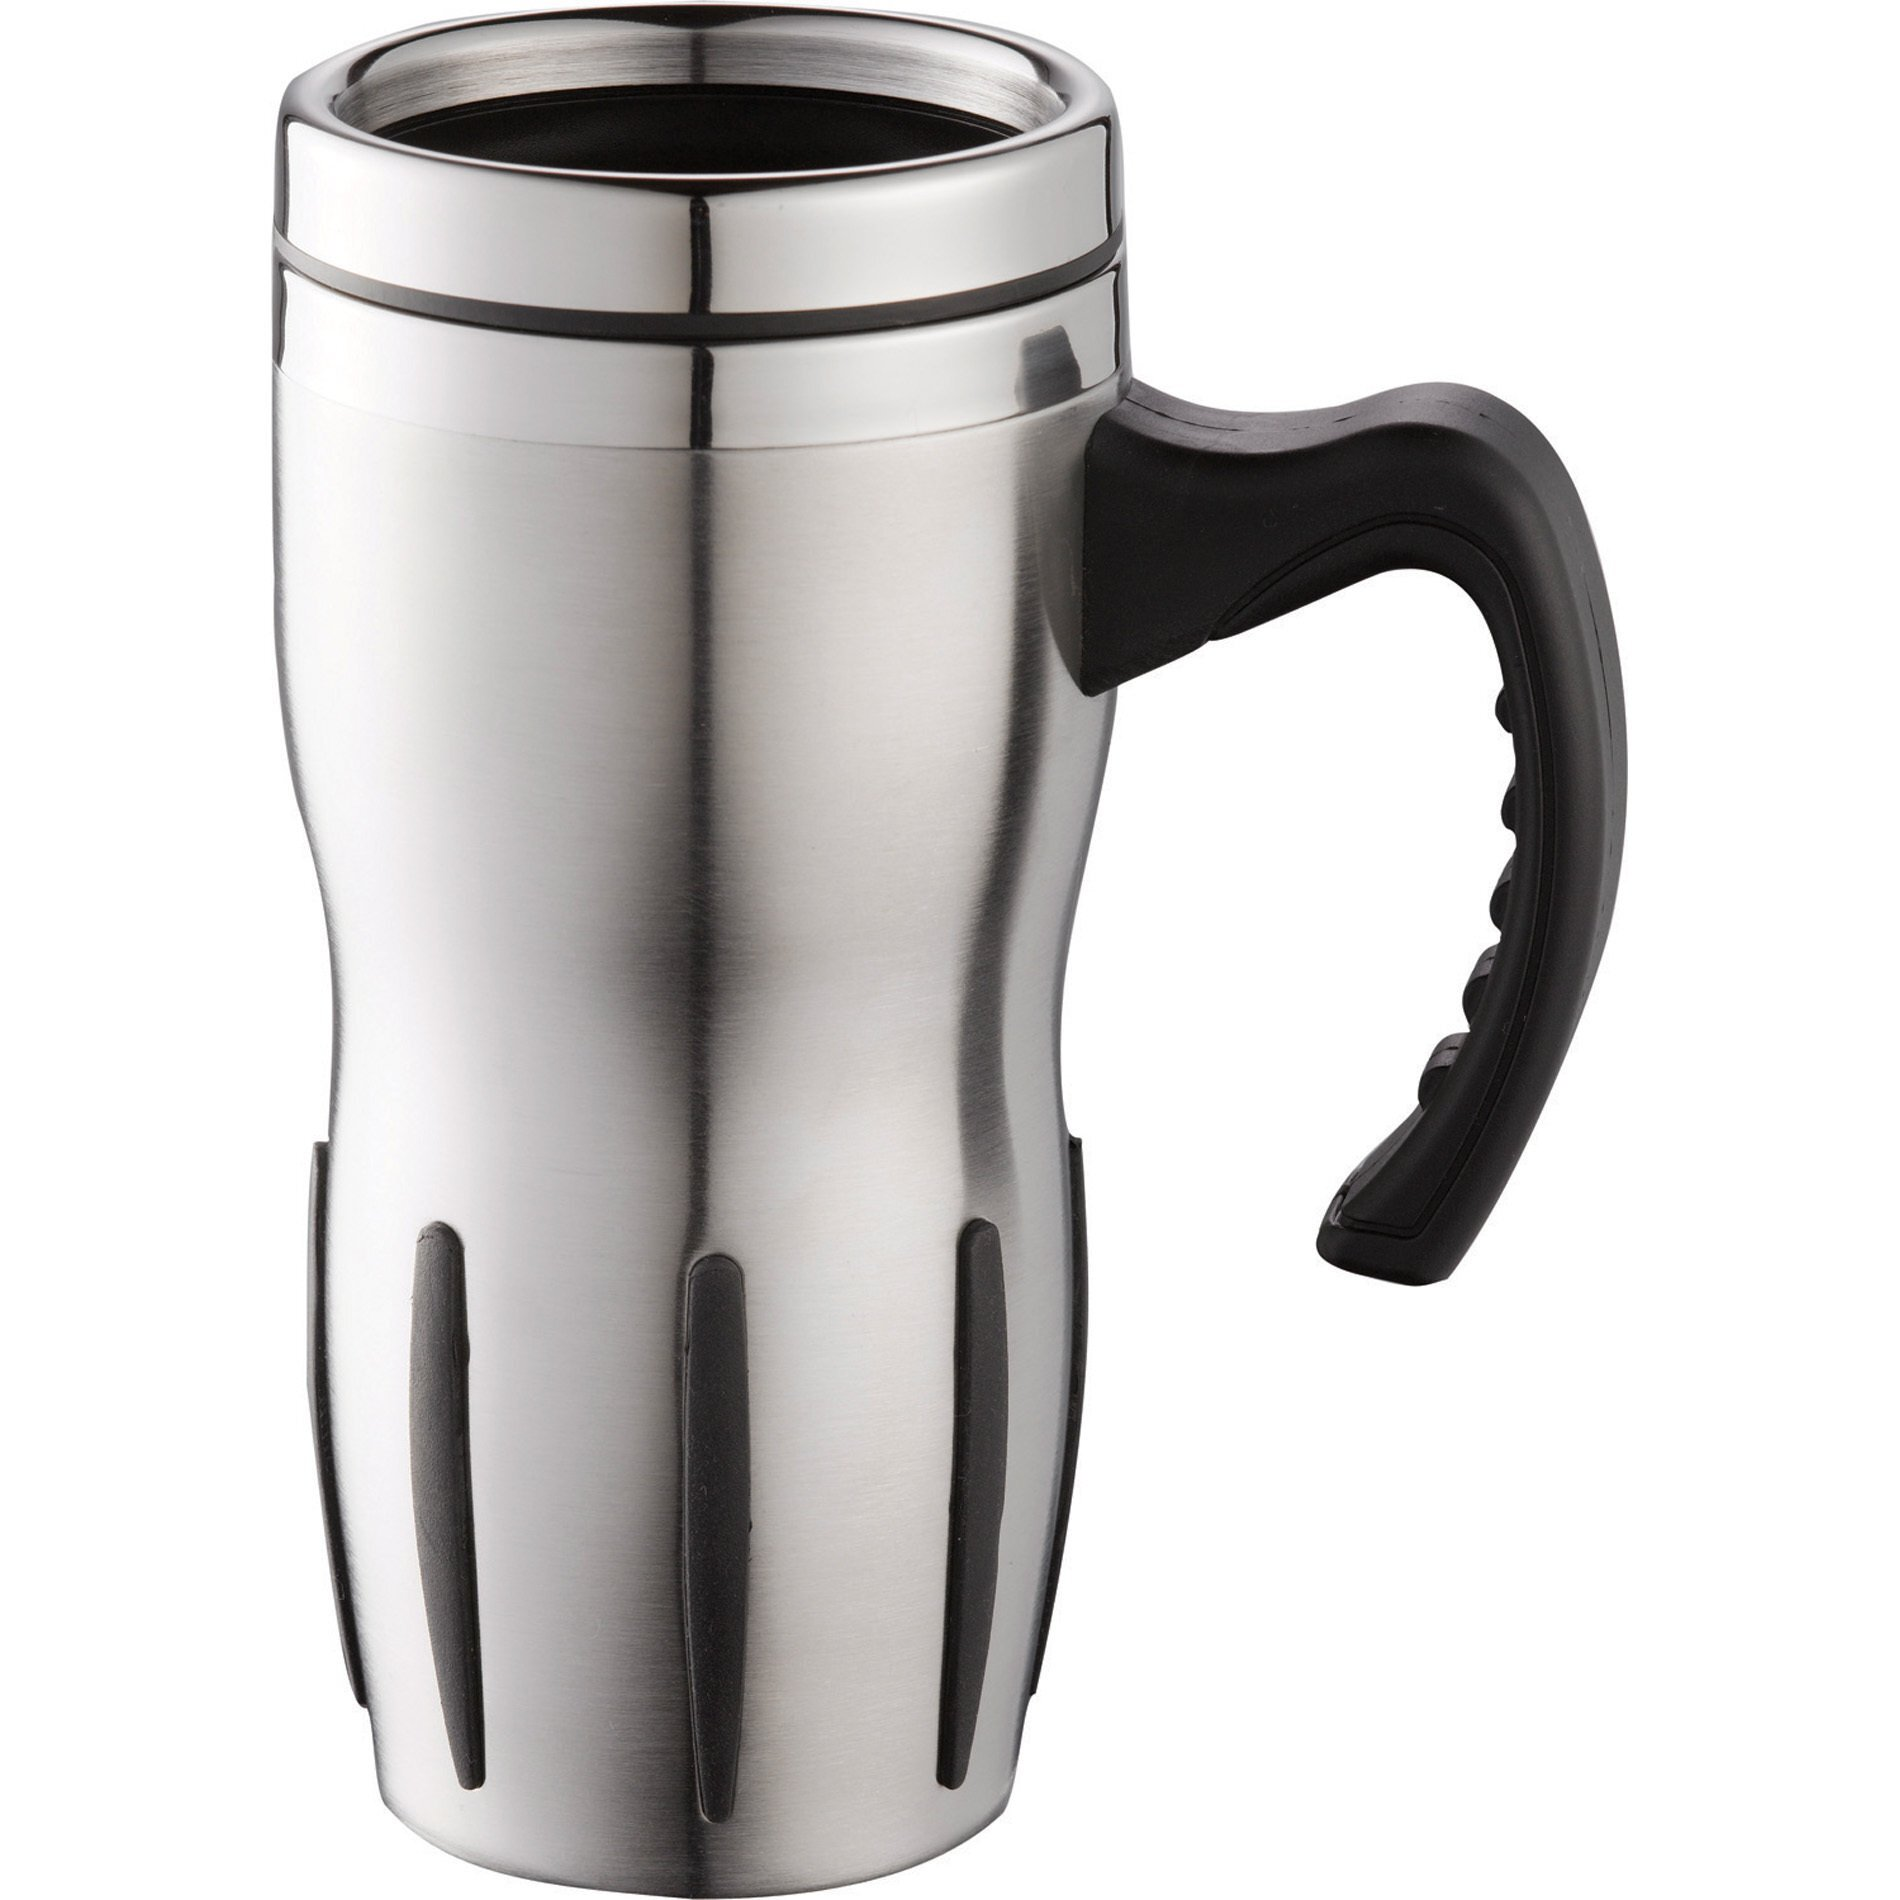 Tech Stainless Steel Travel Mug, 14oz.